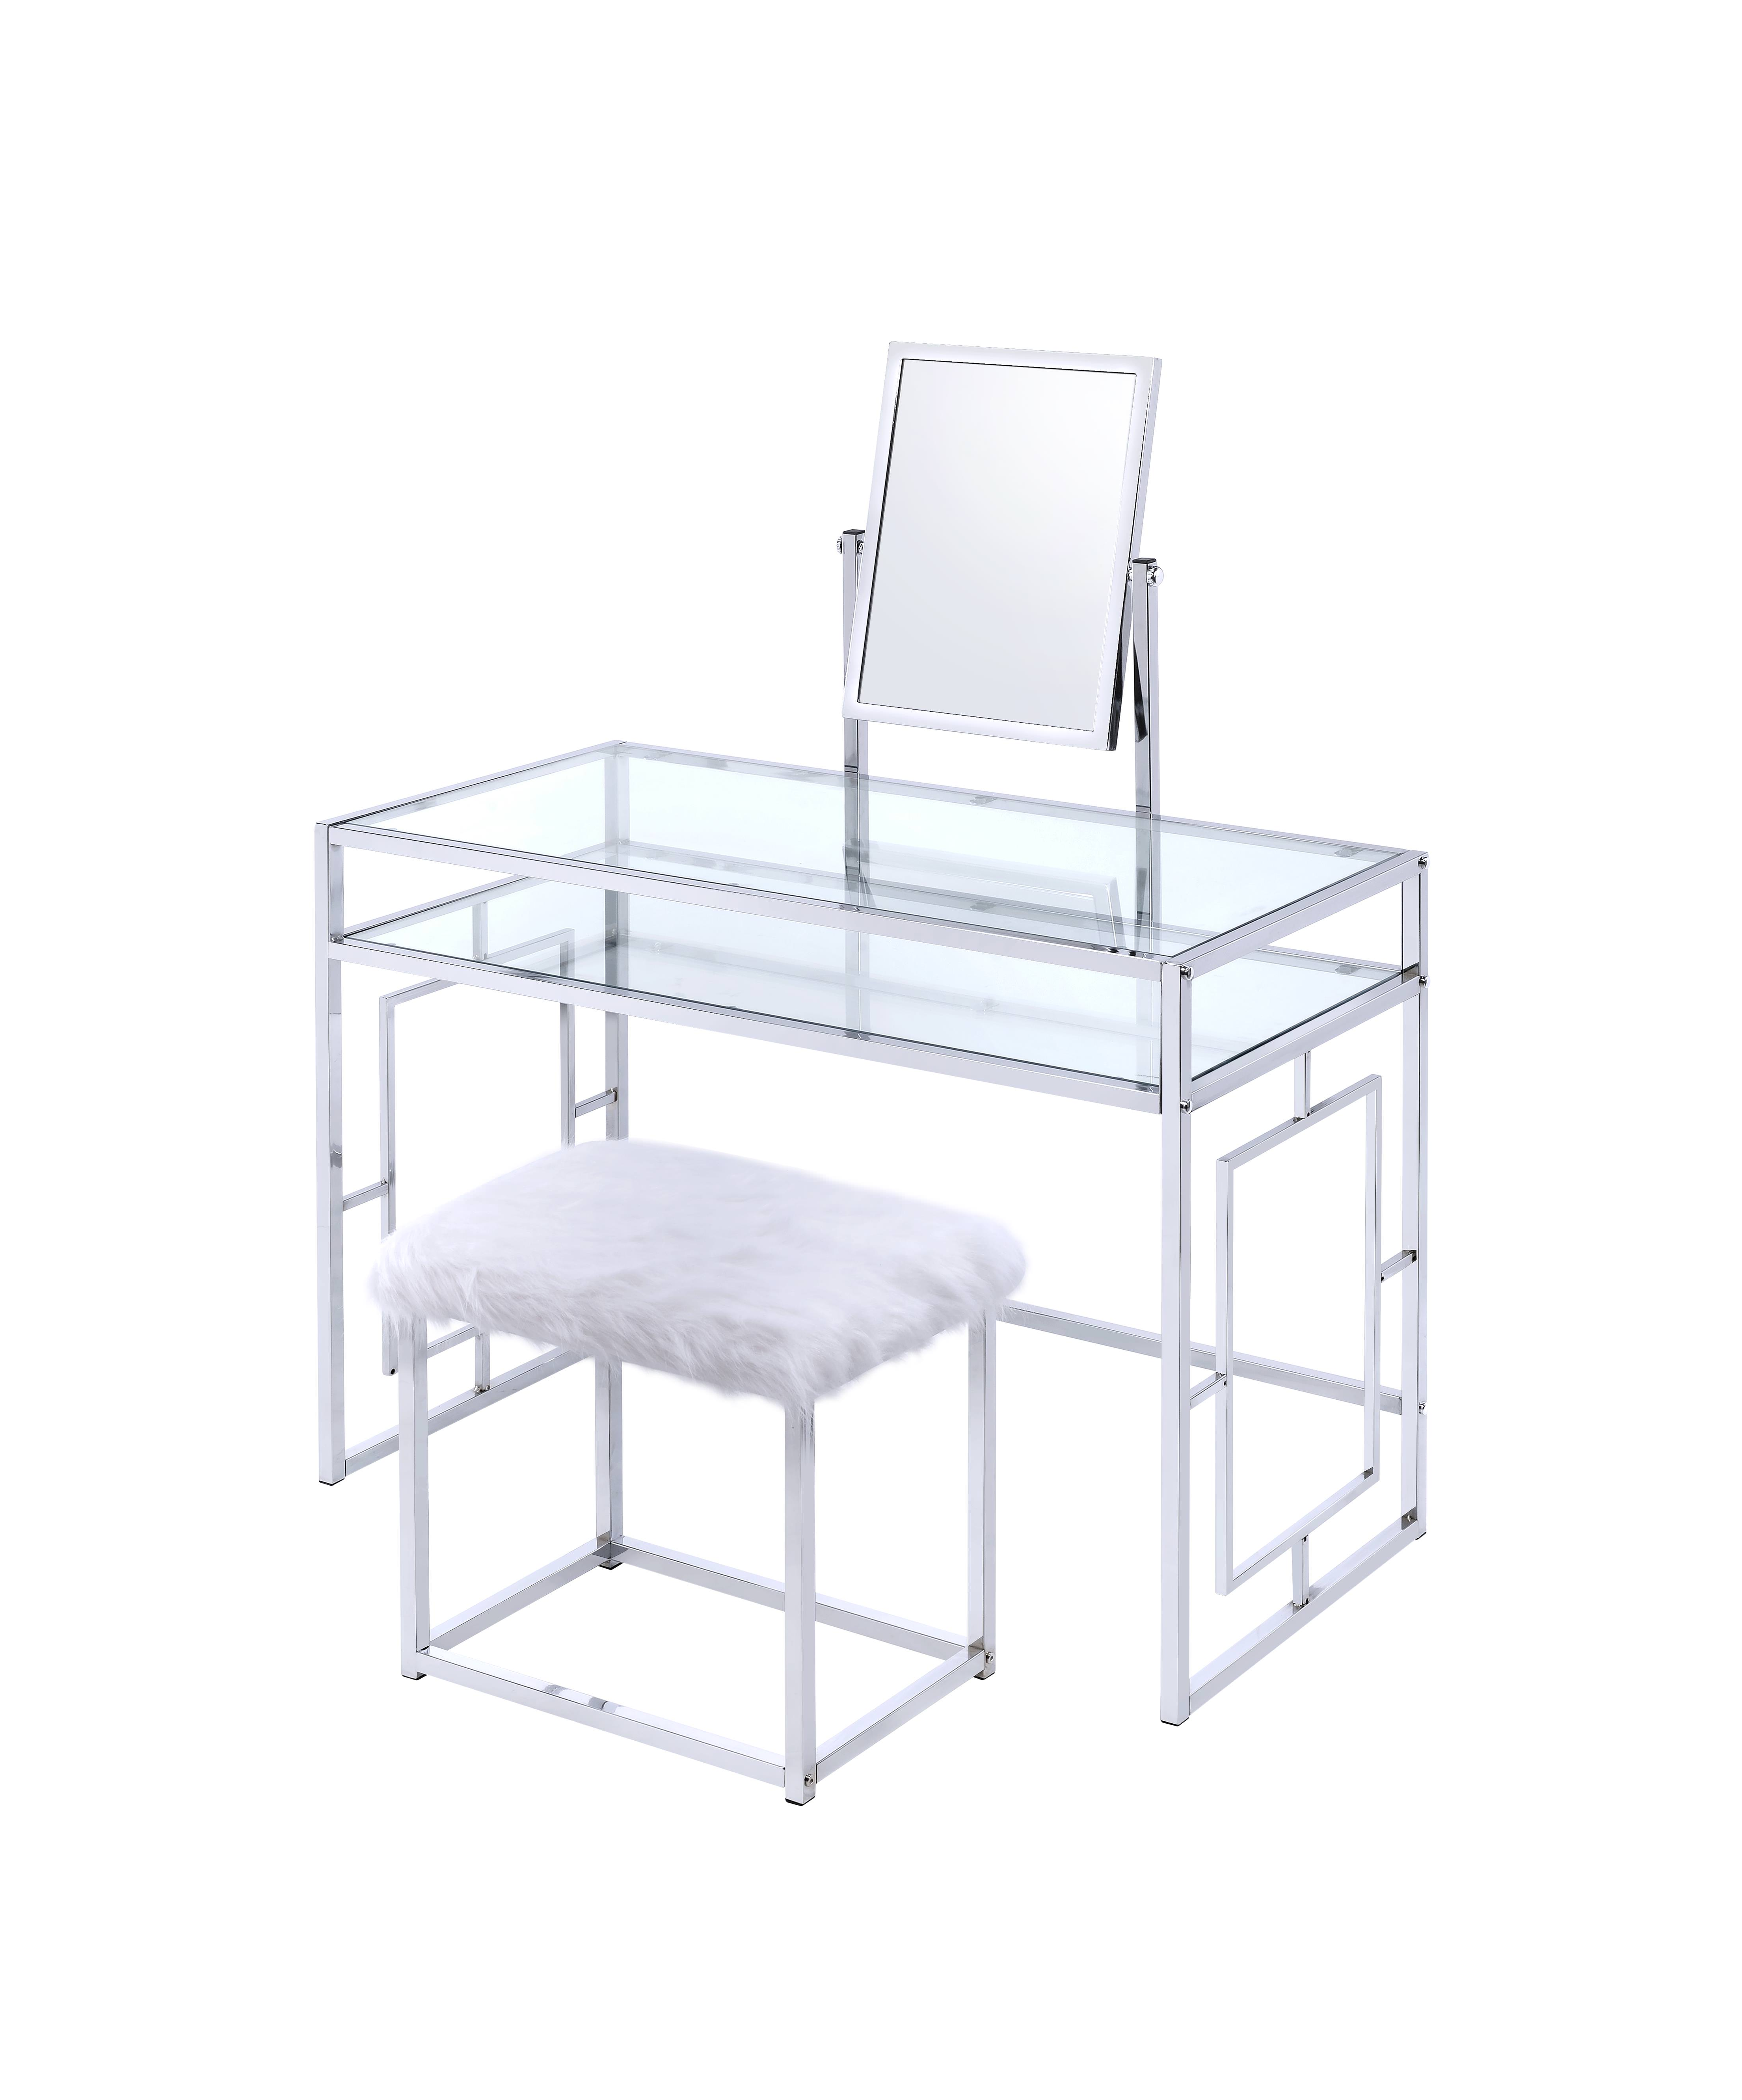 ACME Josh Vanity Table, Mirror, and Stool in White and Chrome by Acme Furniture